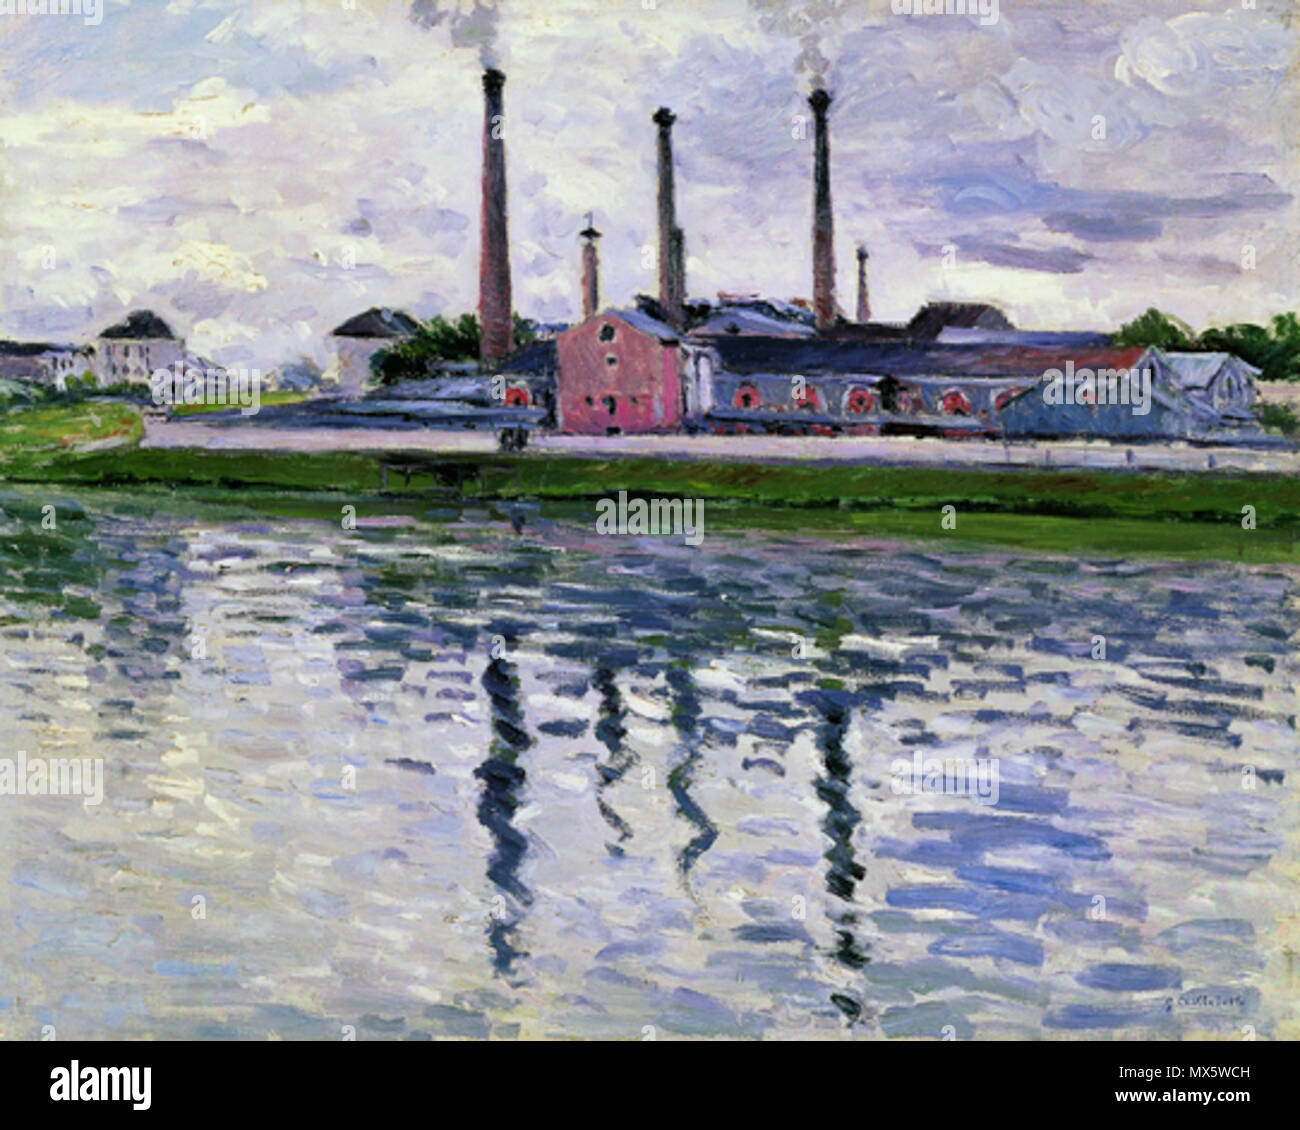 . English: Painting by Gustave Caillebotte, (French impressionist, 1848–1894) entitled Factories in Argenteuil, 1888. Oil on canvas, 25 9/16 x 32 5/16 in. (65 x 82 cm). Private collection . 22 February 2013, 11:06:06. Gustave Caillebotte (d. 1894) 99 Brooklyn Caillebotte factories-in-argenteuil - Stock Image